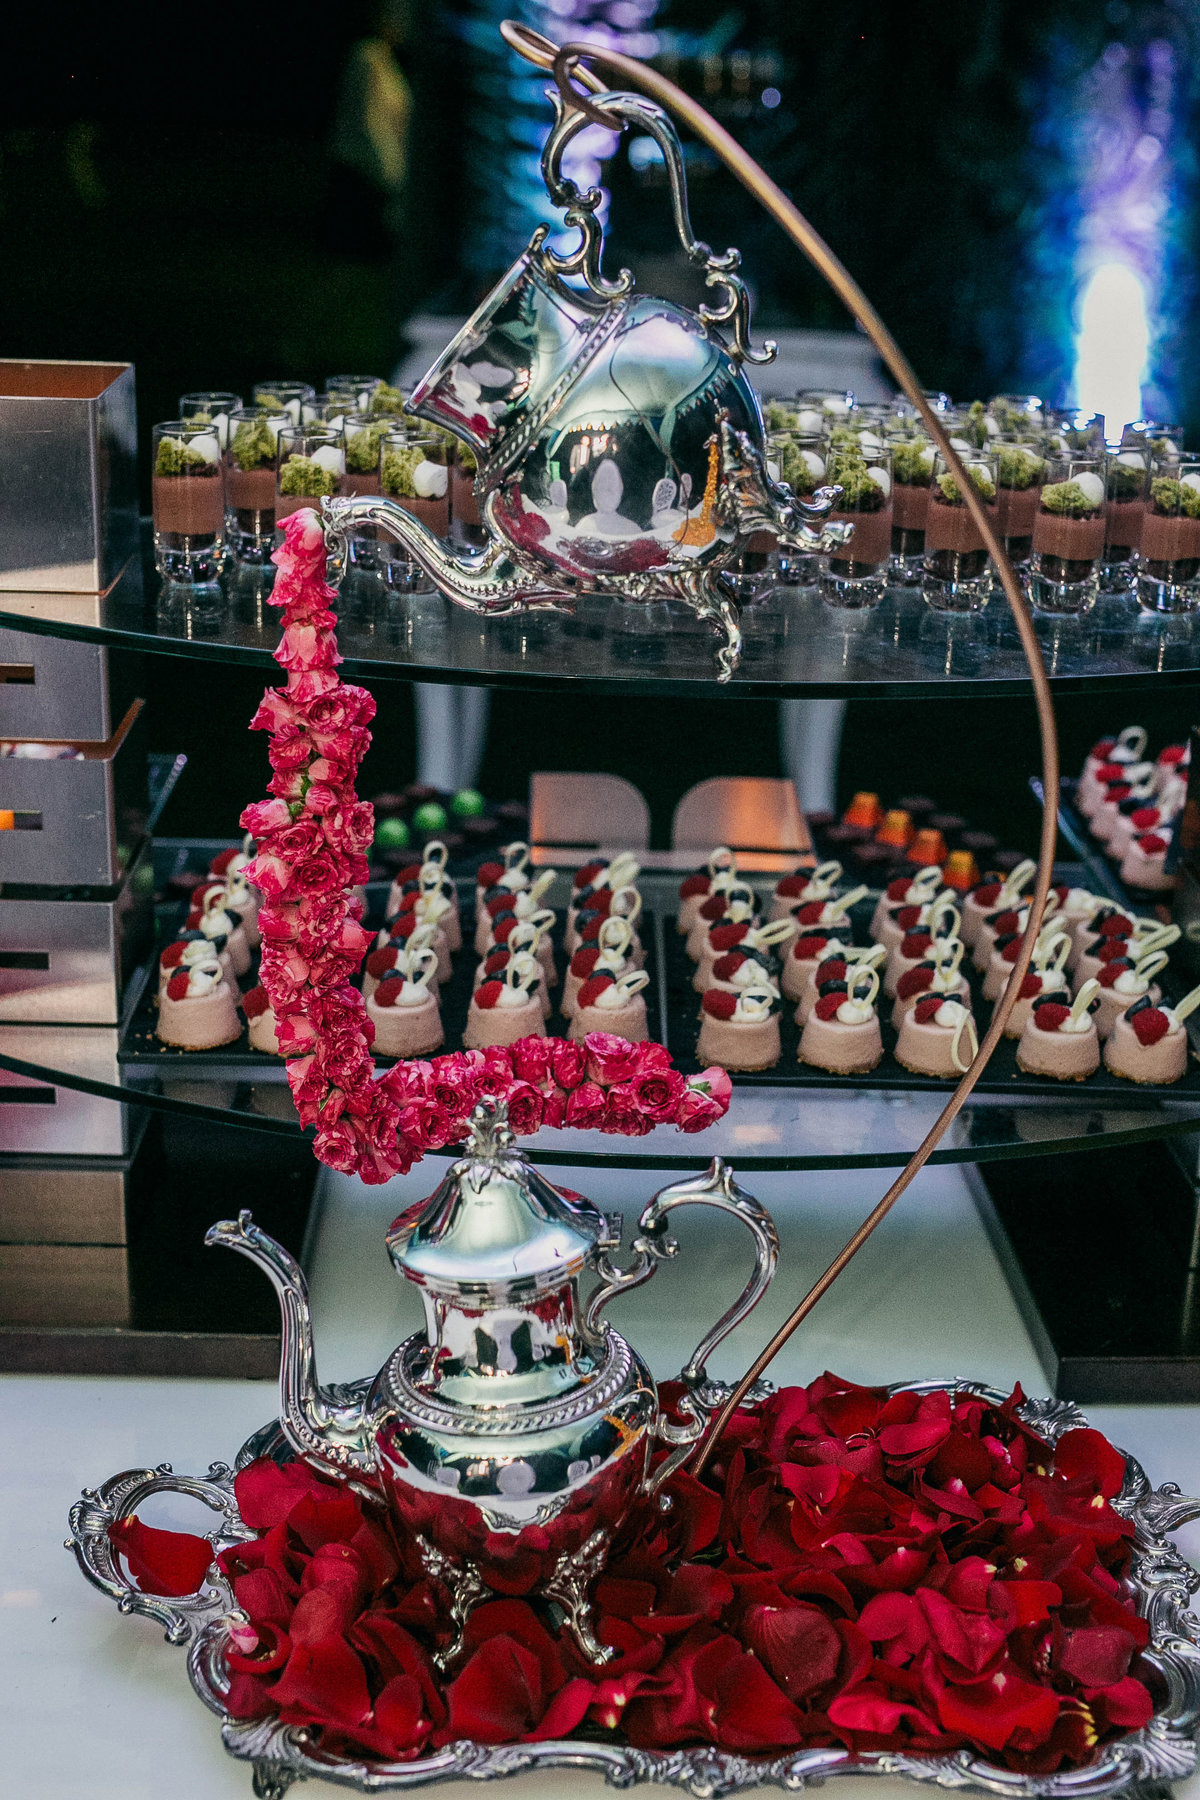 Teacup and Roses Alice in Wonderland Party